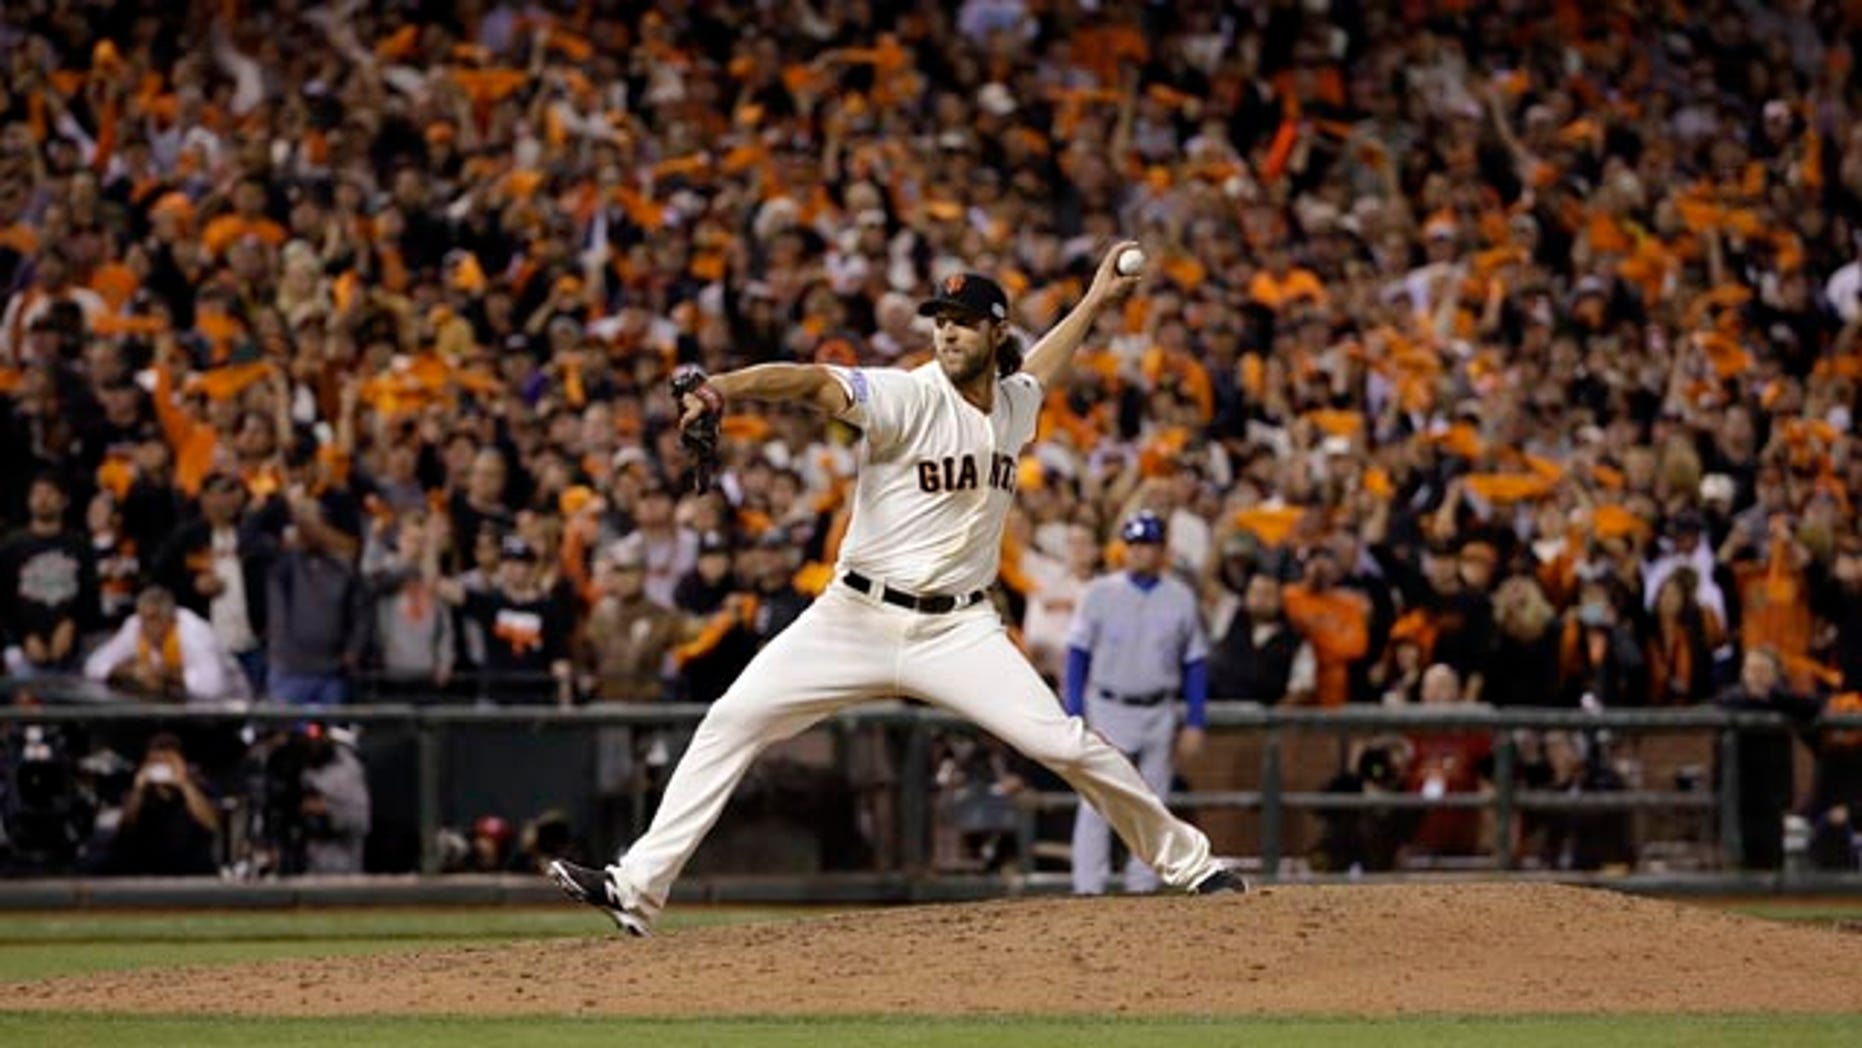 October 26, 2014: San Francisco Giants pitcher Madison Bumgarner throws during the eighth inning of Game 5 of baseball's World Series against the Kansas City Royals in San Francisco. (AP Photo/David J. Phillip)